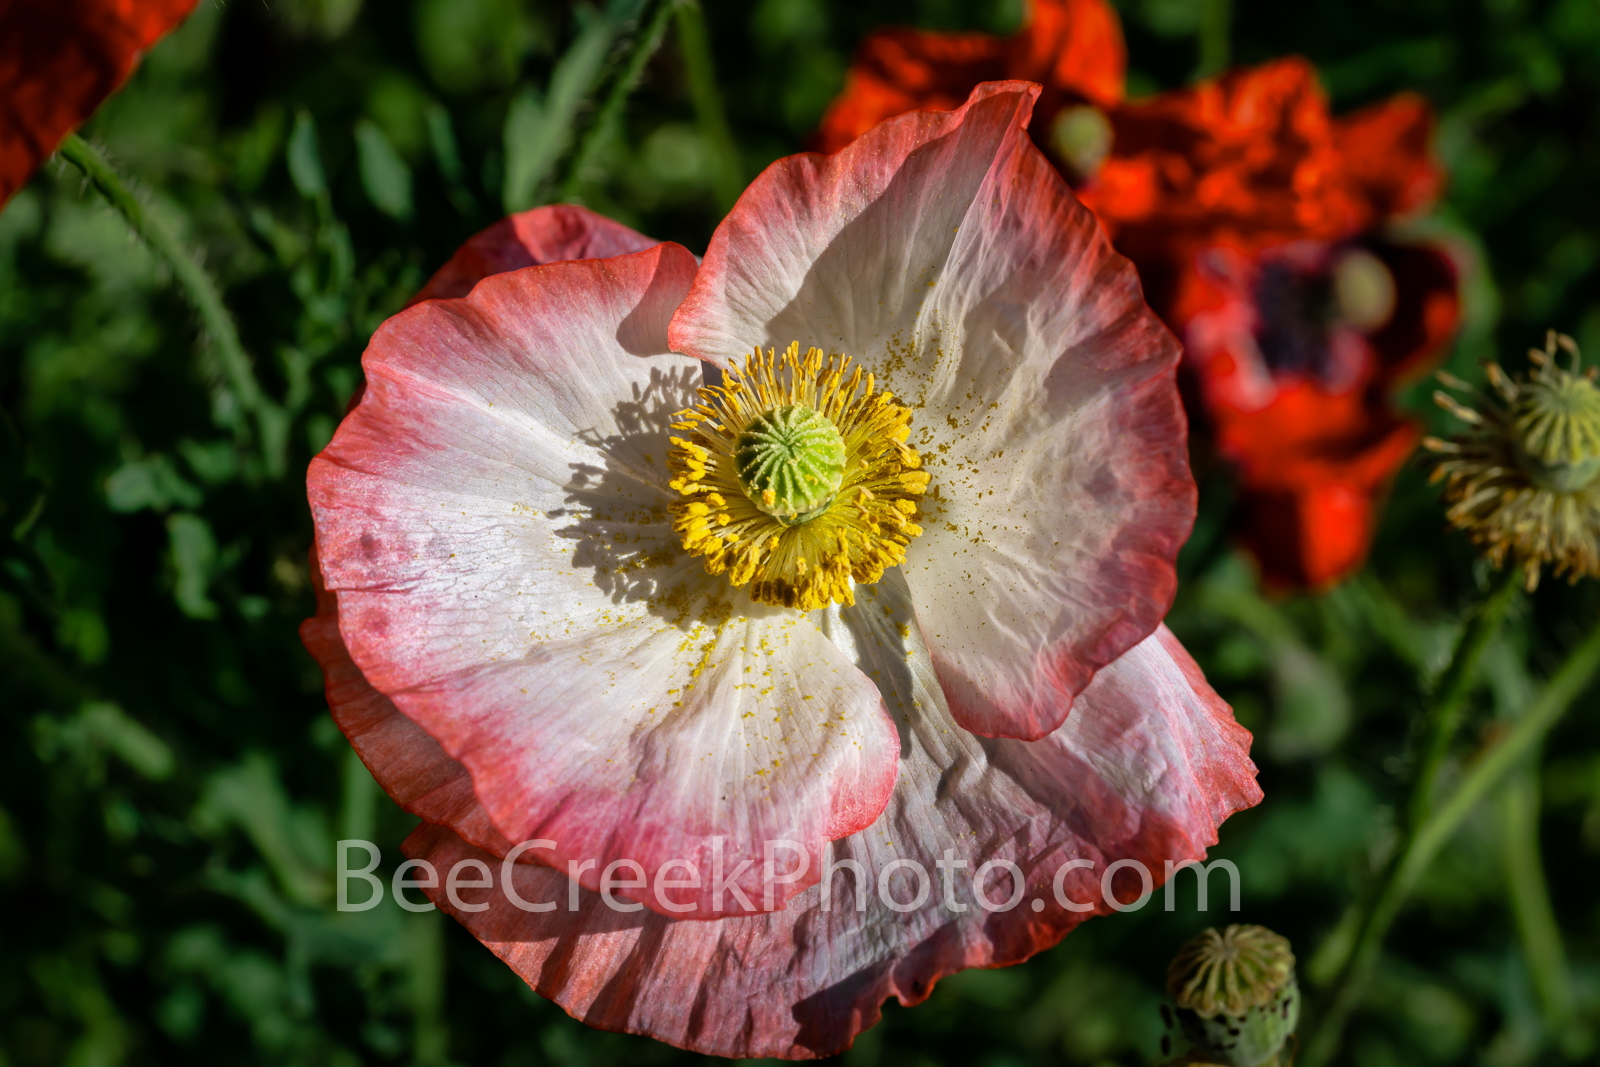 Pink and White Poppy - Some also call these the common poppy, corn rose, field poppy, Flanders poppy, and red poppy but I think...